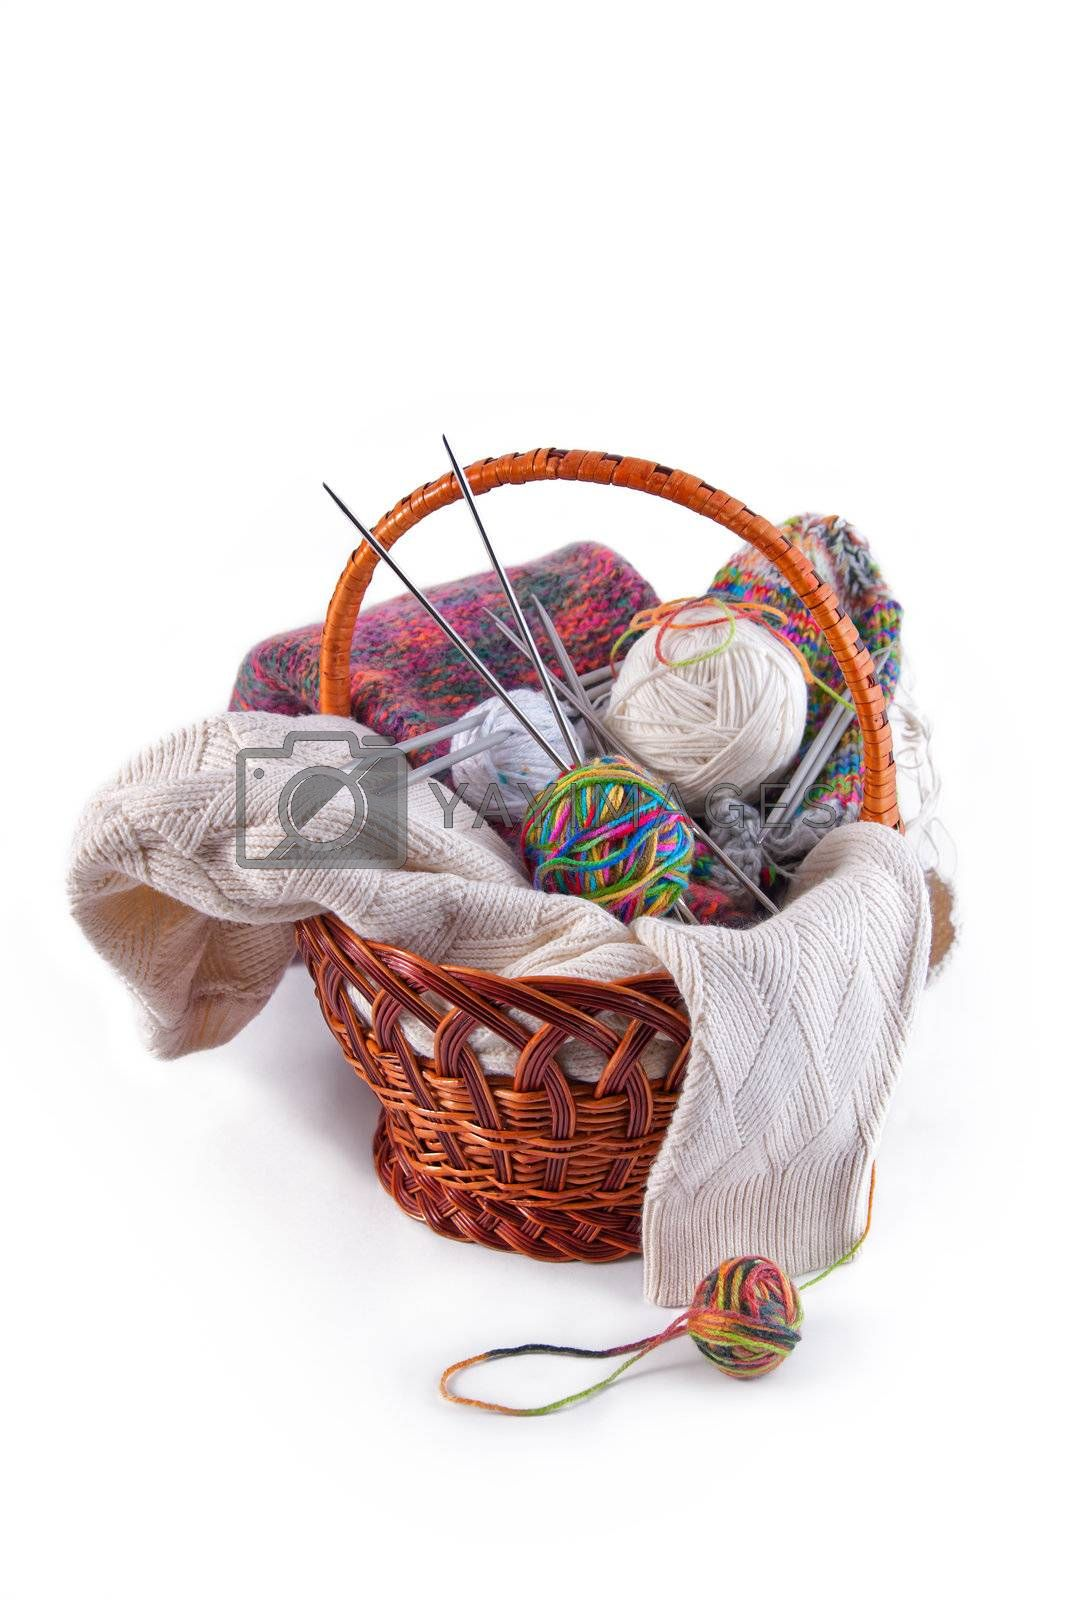 Balls of wool and knitting needles in basket isolated on a white background